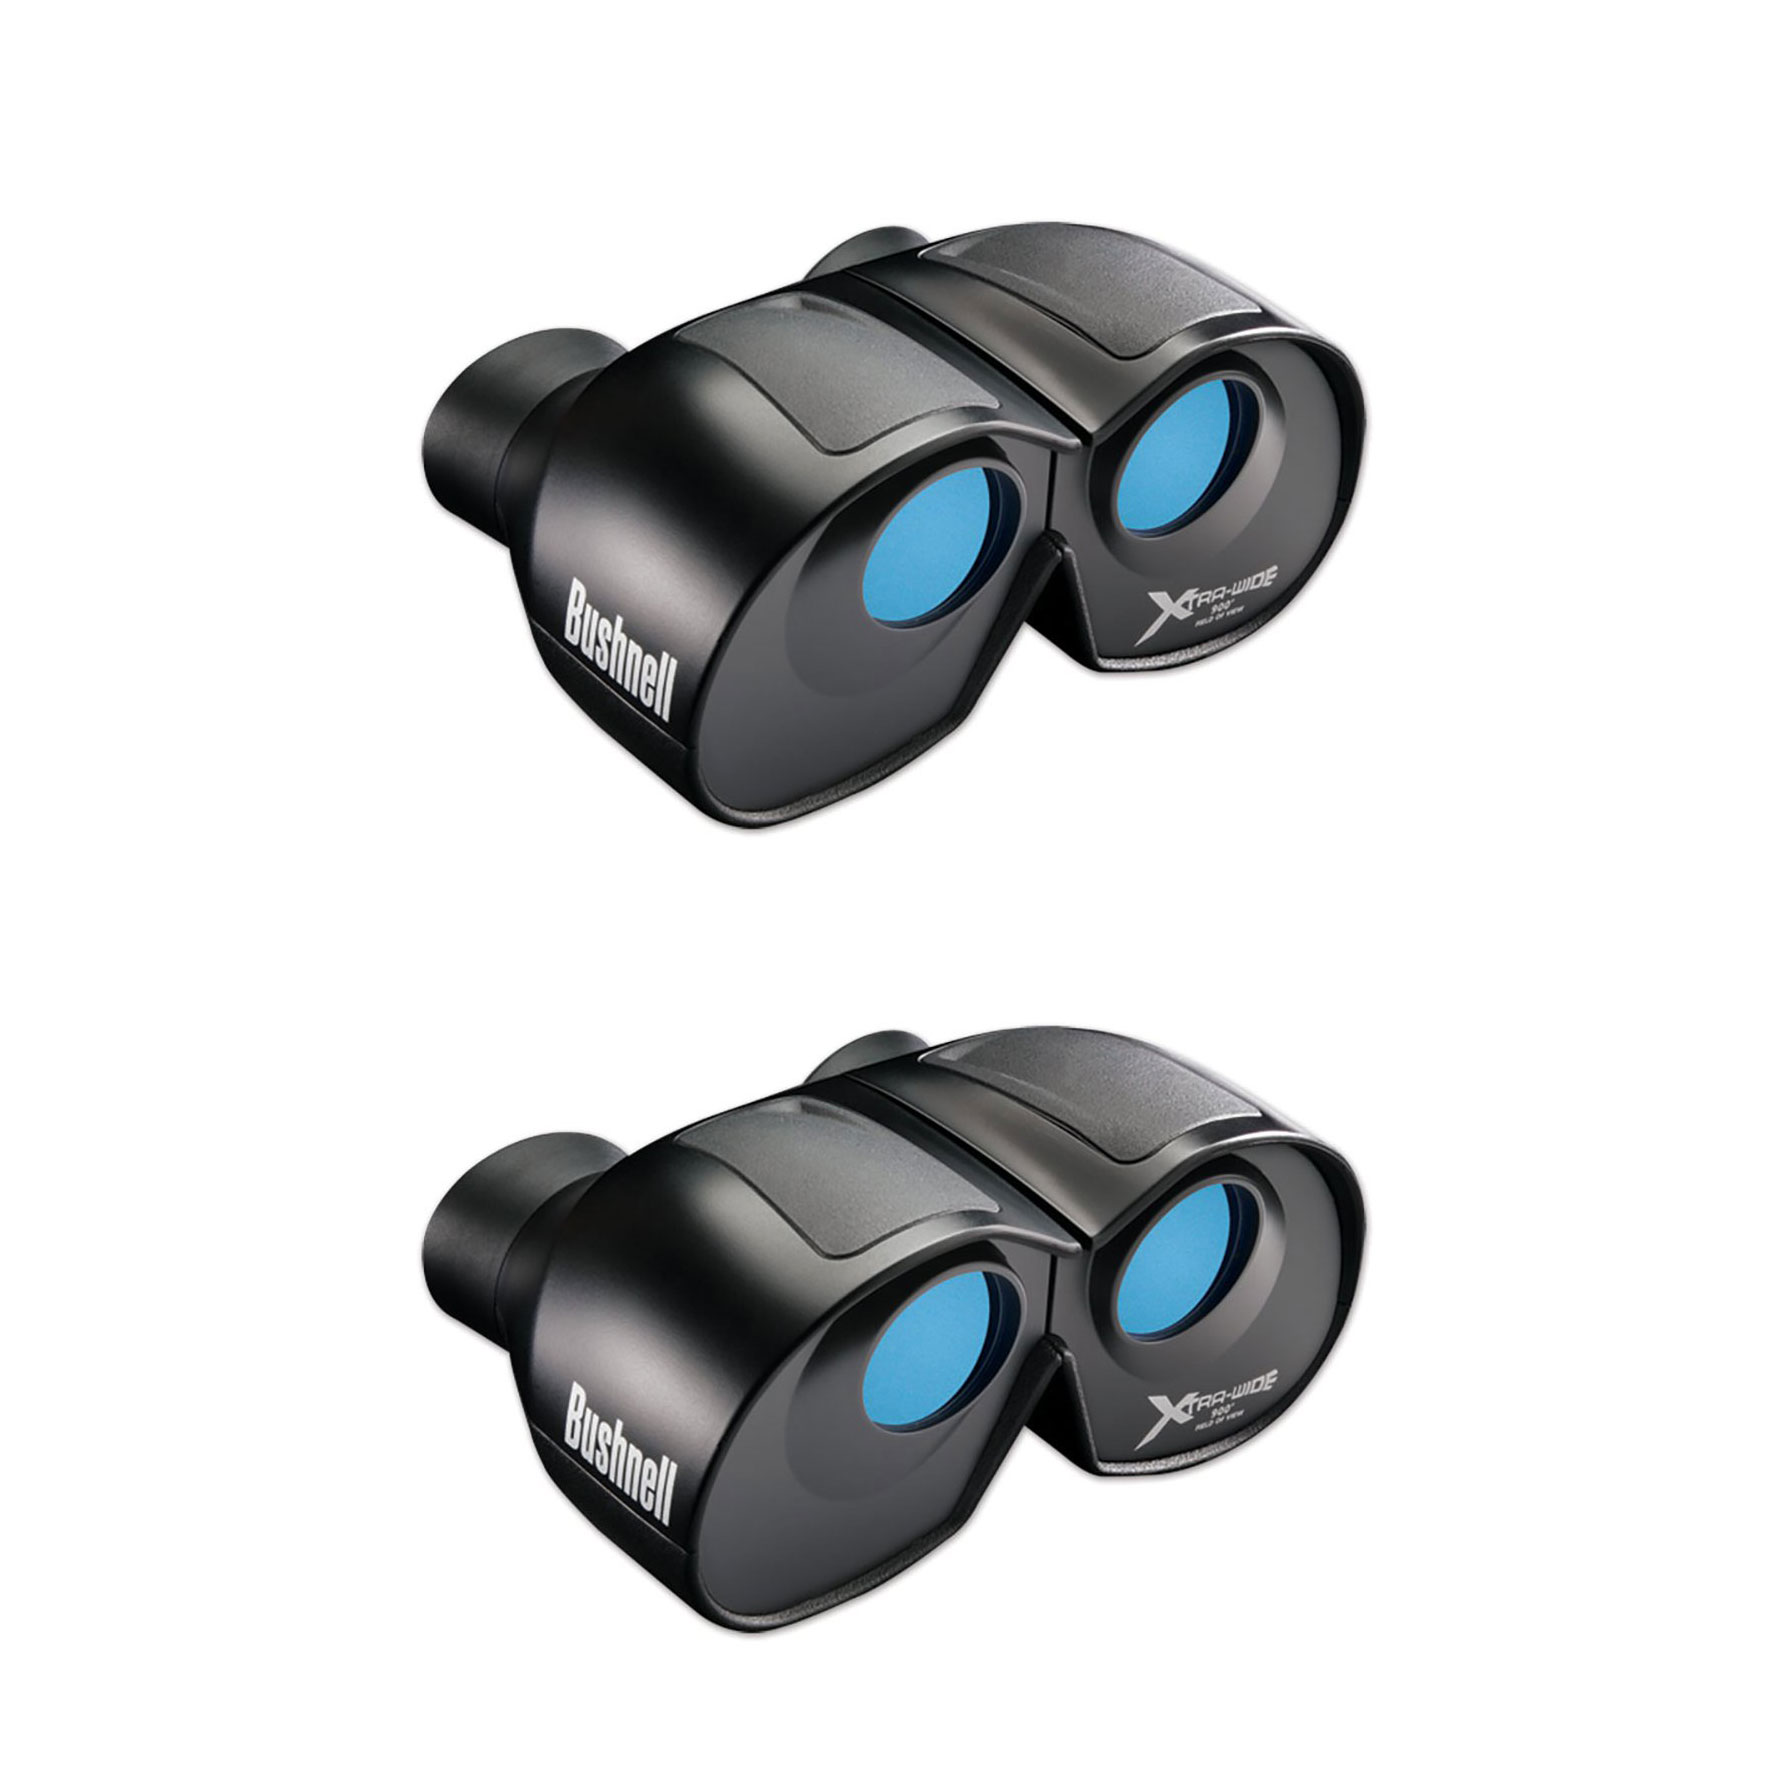 Bushnell Spectator Series 4x Magnification 30mm Wide View Binoculars (2 Pack)